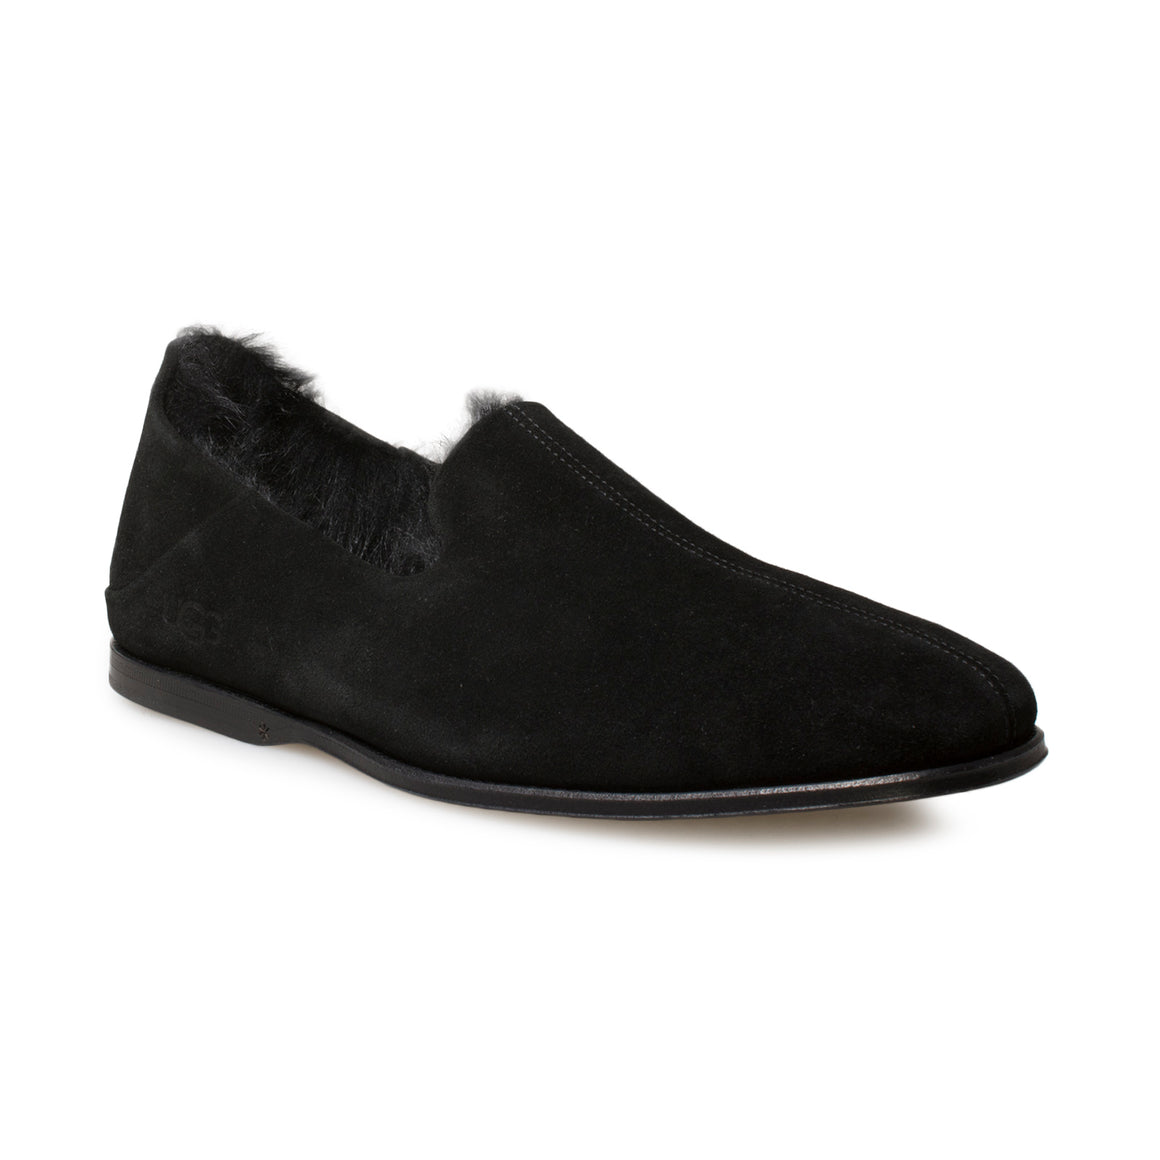 UGG Chateau Black Shoes - Men's